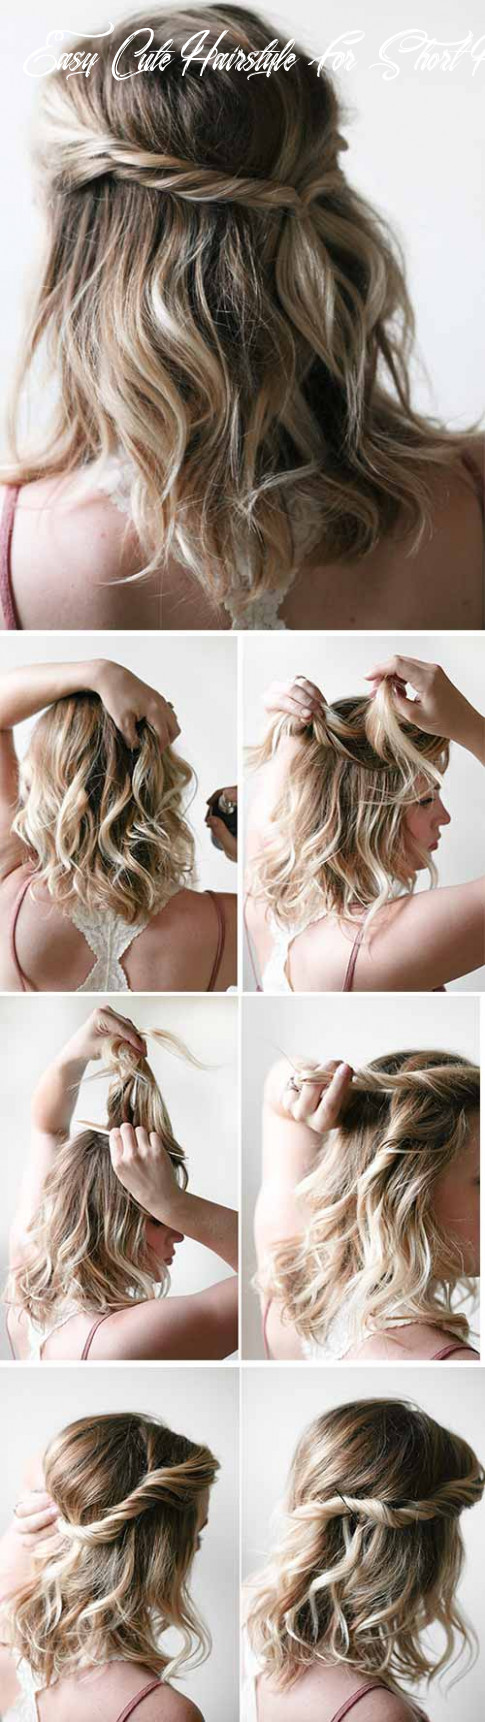 12 incredible diy short hairstyles a step by step guide easy cute hairstyle for short hair